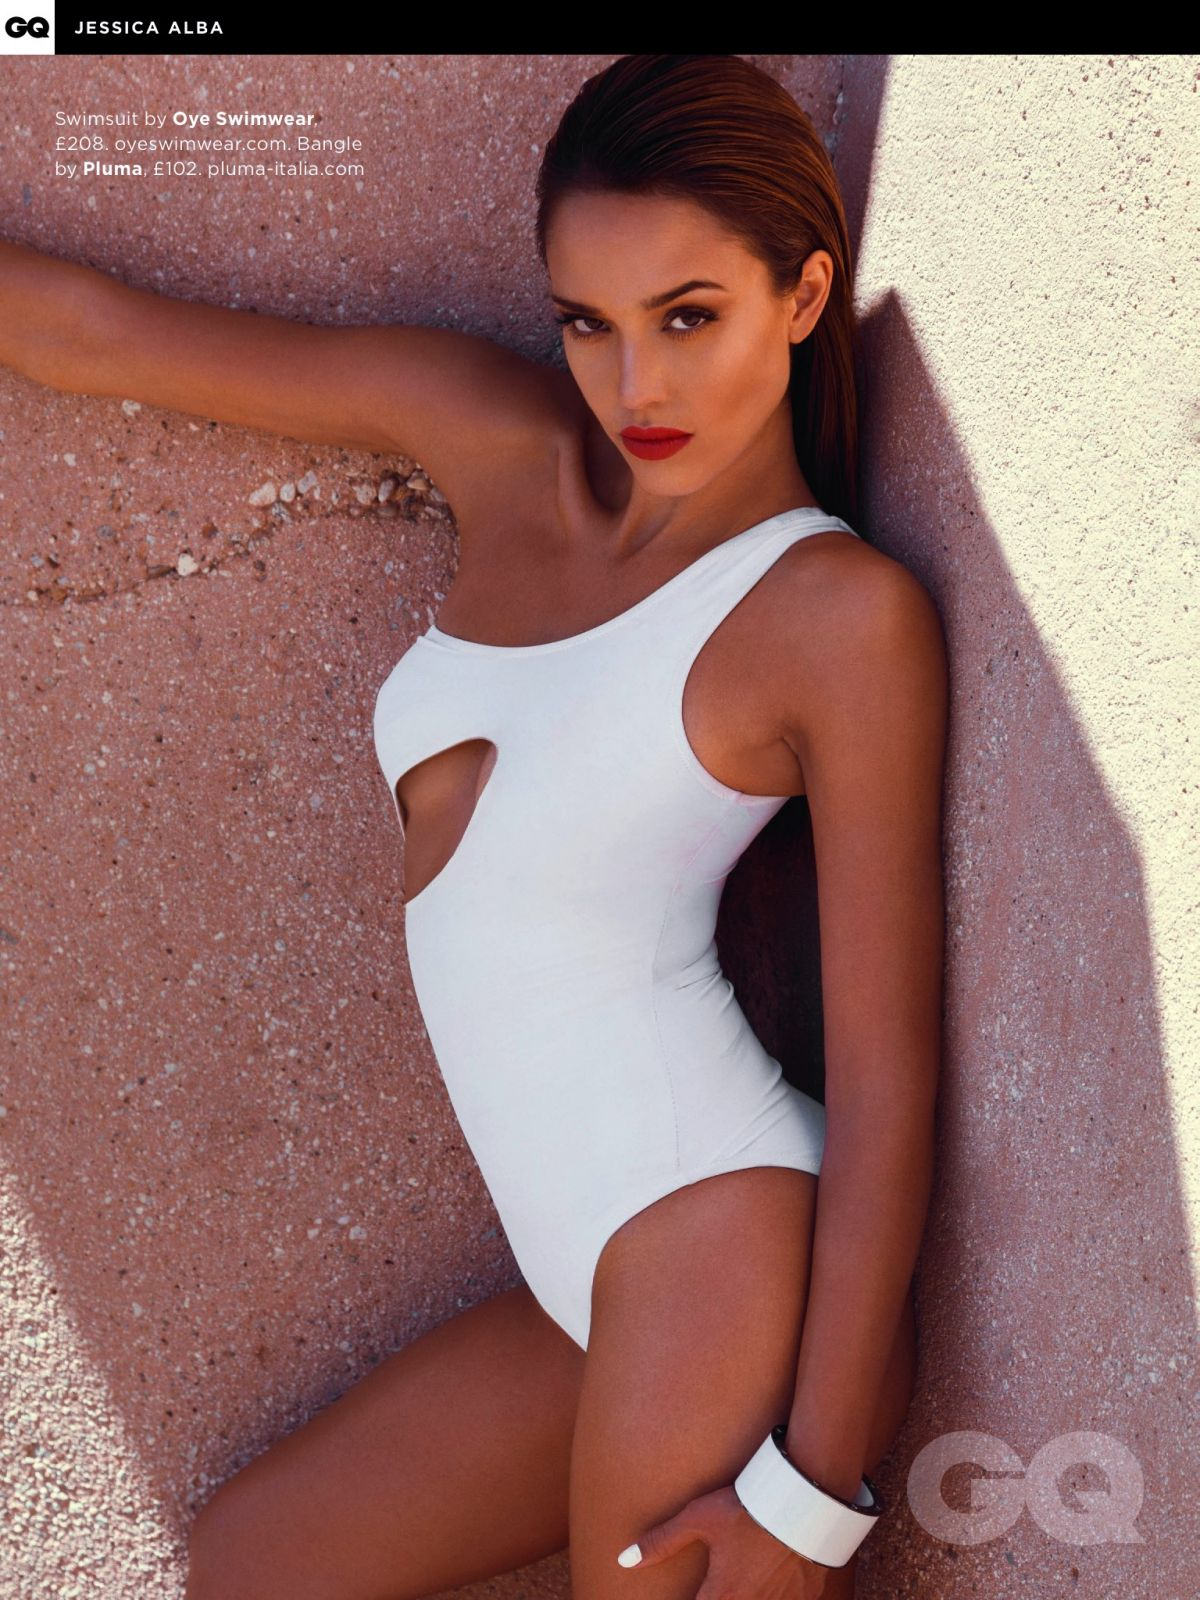 JESSICA ALBA in GQ Magazine, August 2014 Issue